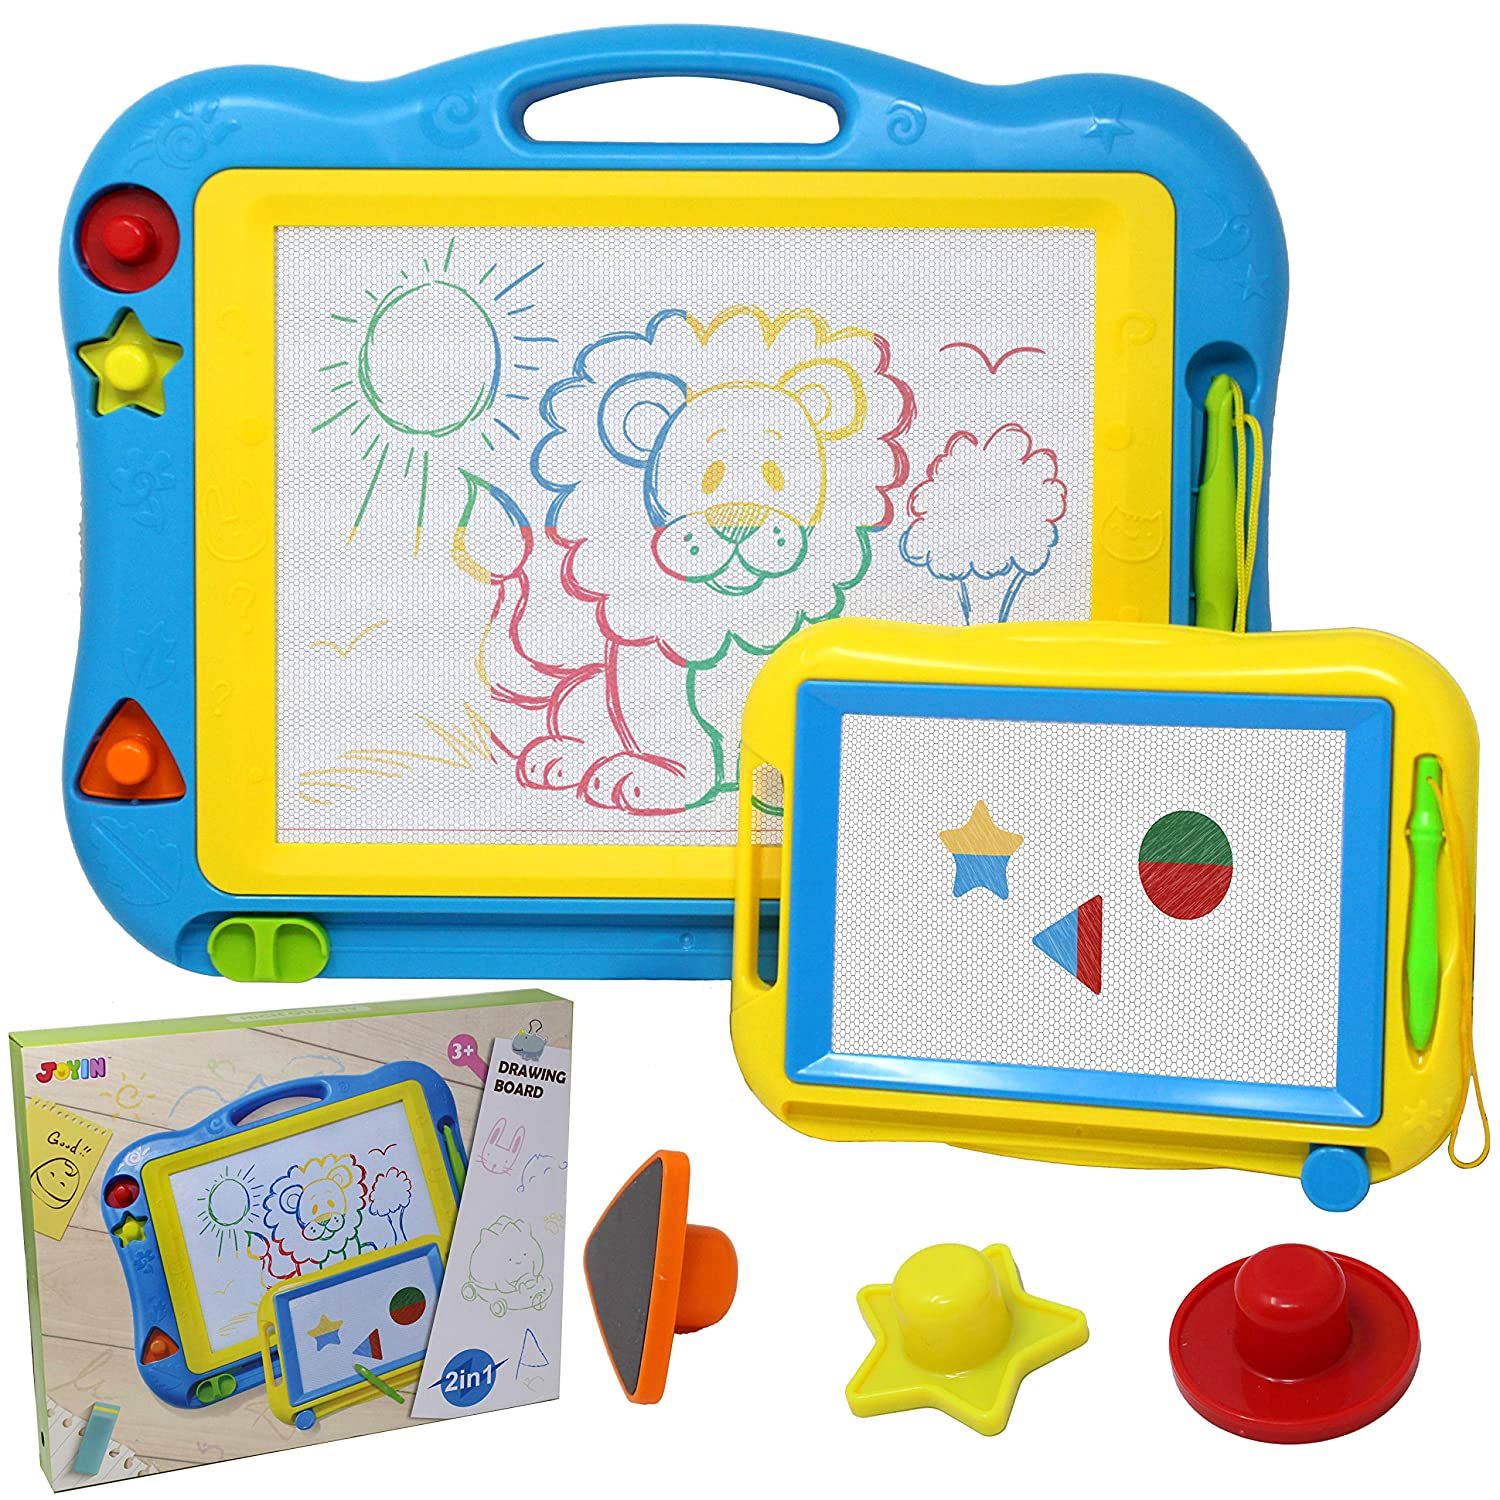 """2 Magna Doodle Boards with Multi-Colors Drawing Screens, 13"""" x 17"""" Erasable Magnetic Drawing Sketch Board for Toddler Painting, Travel Gaming Pad Toy, Birthday Gift Present, Easter Basket Stuffers"""